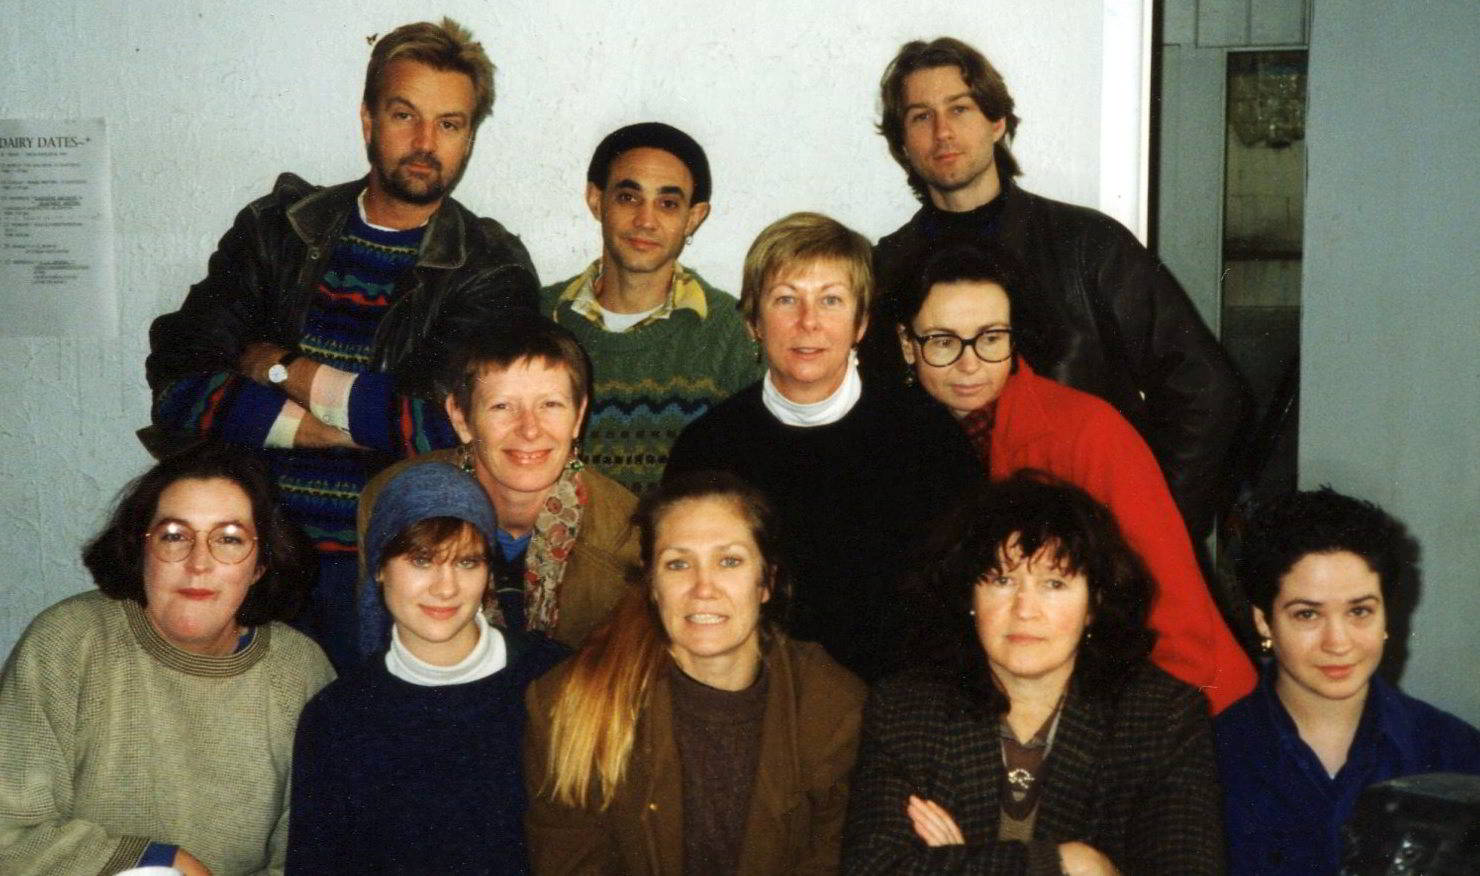 group photo of eleven people in winter clothes